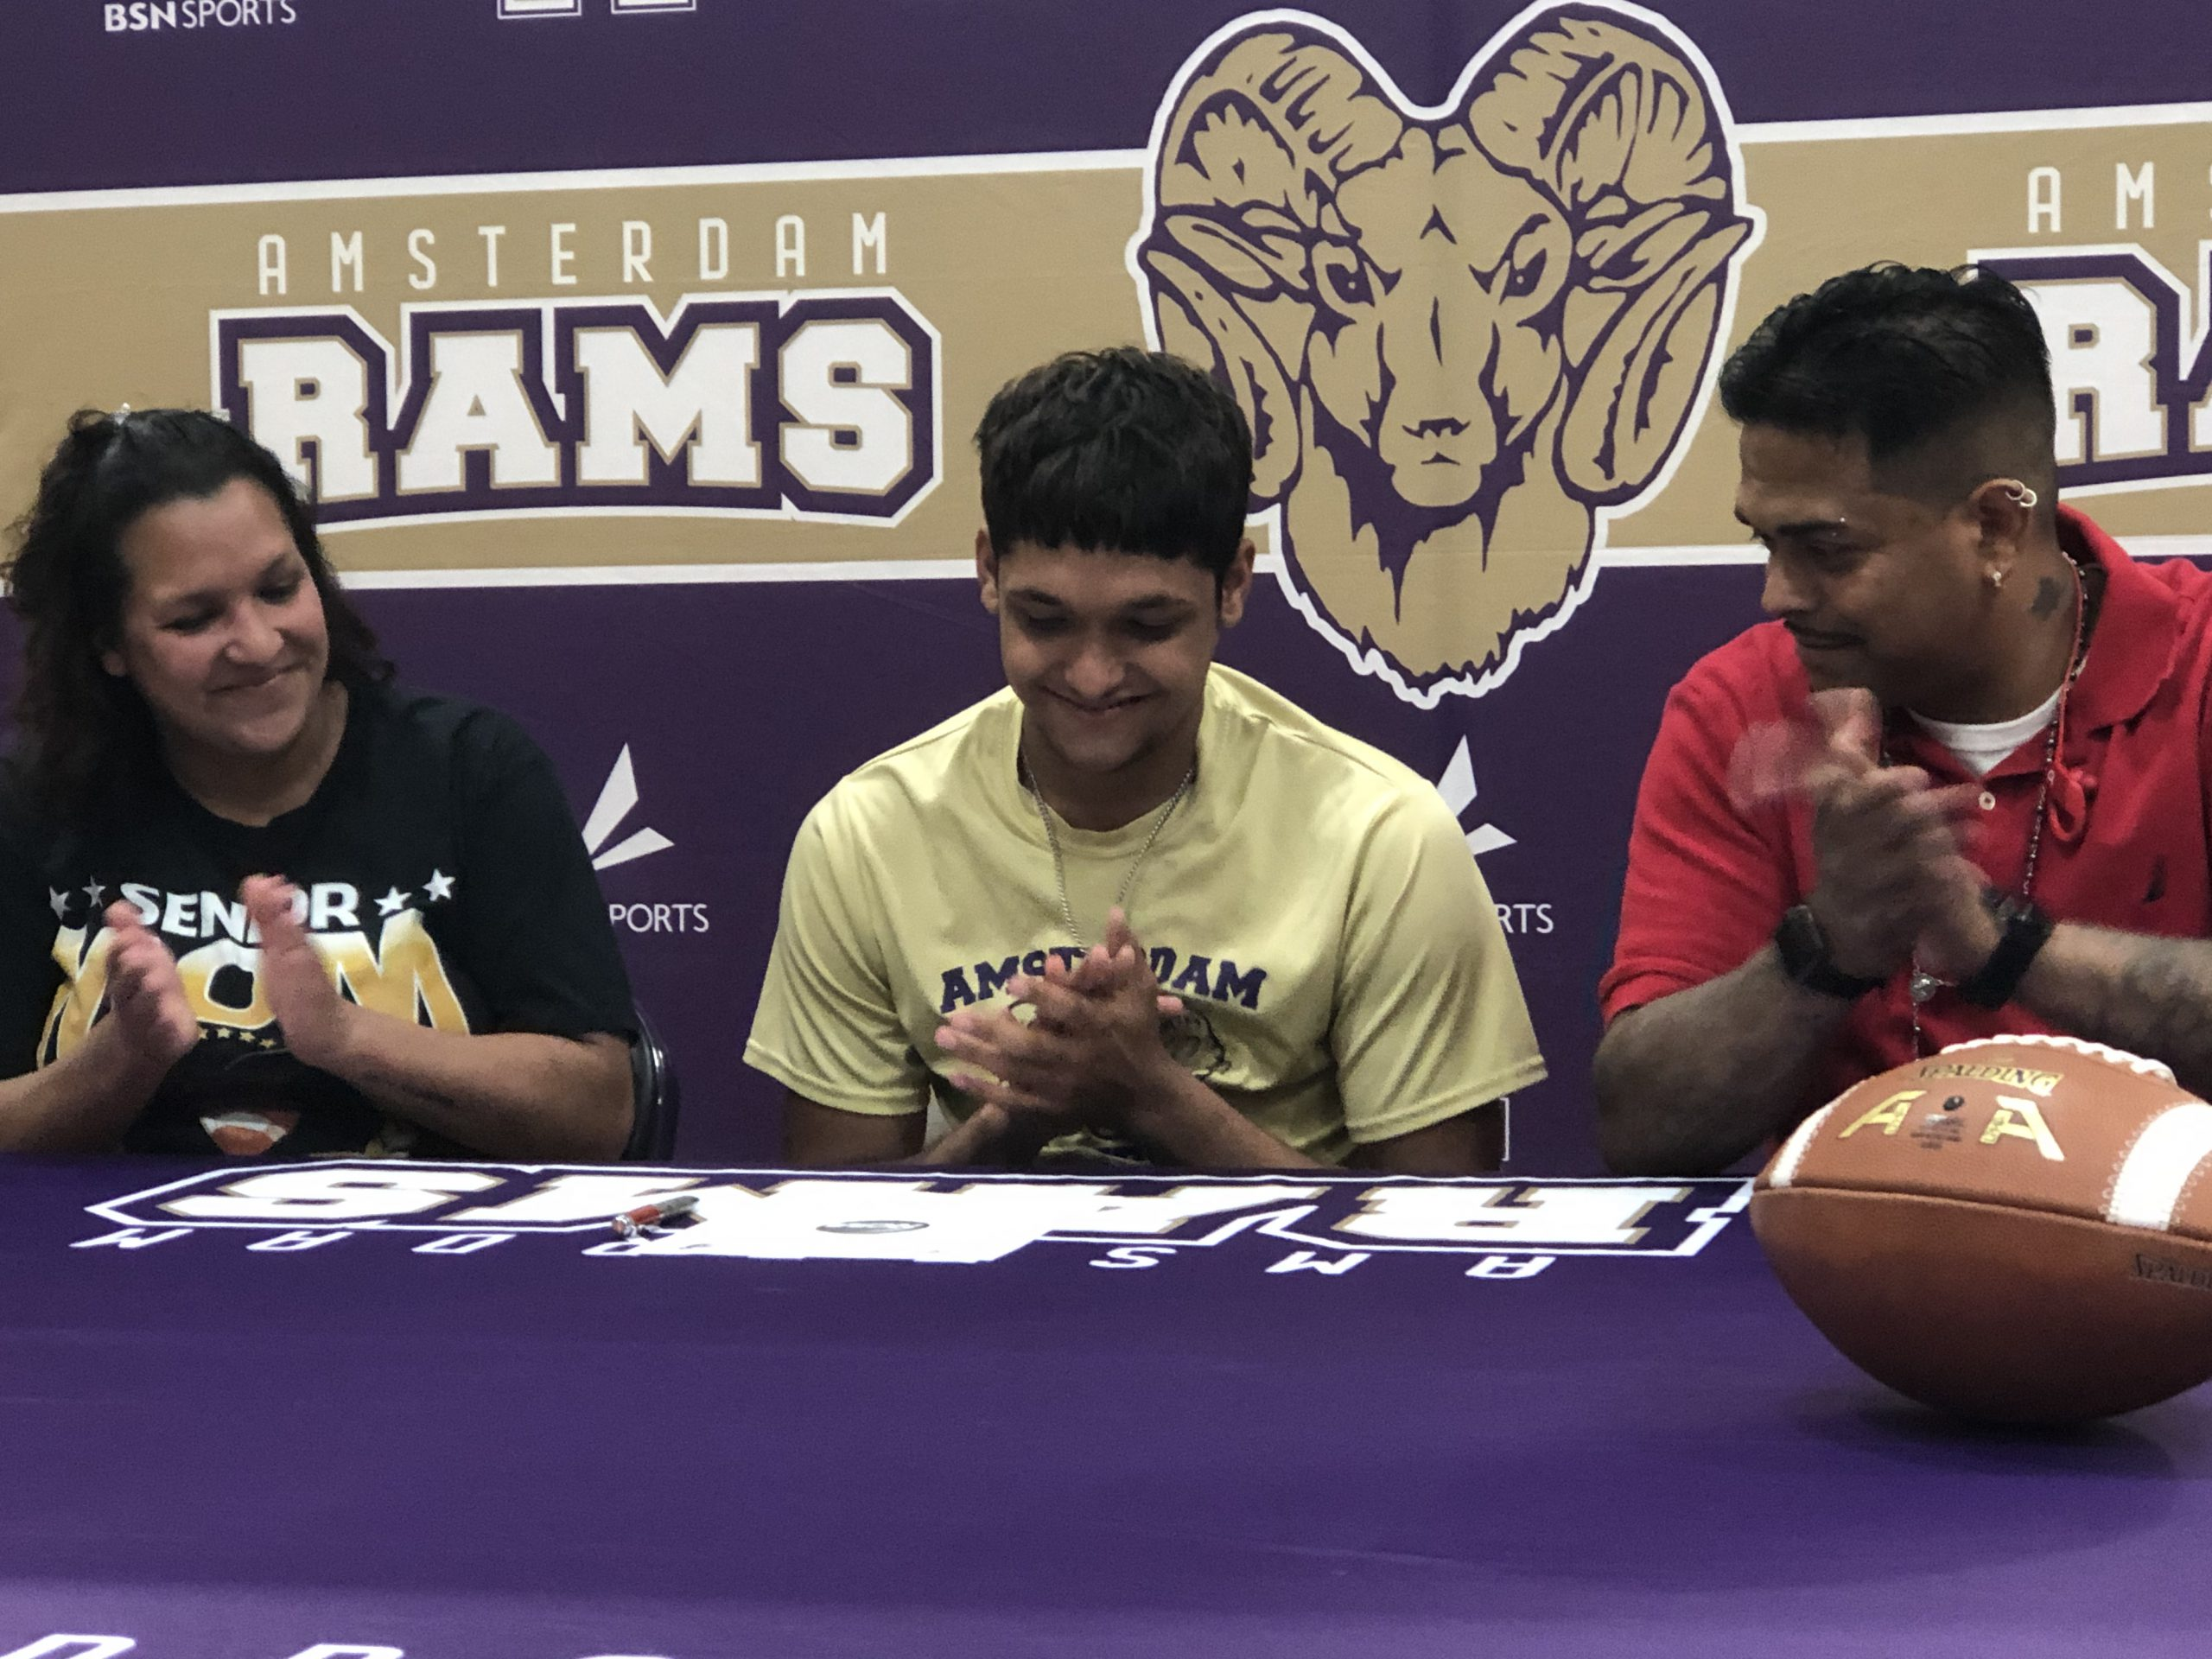 athlete at table signing letter with his parents